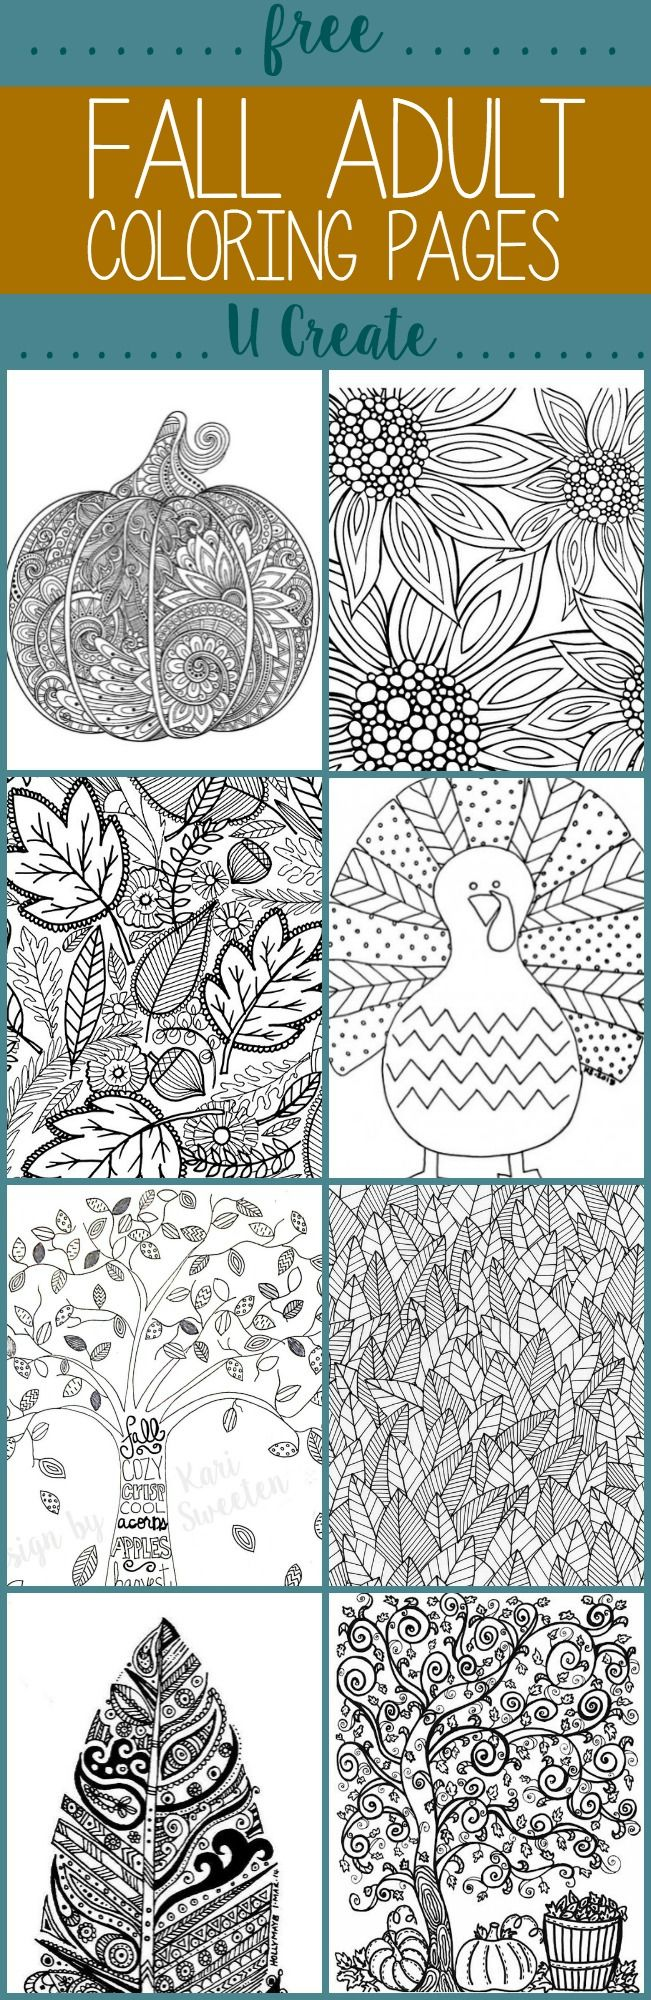 free coloring pages for adults thanksgiving : Free Fall Adult Coloring Pages